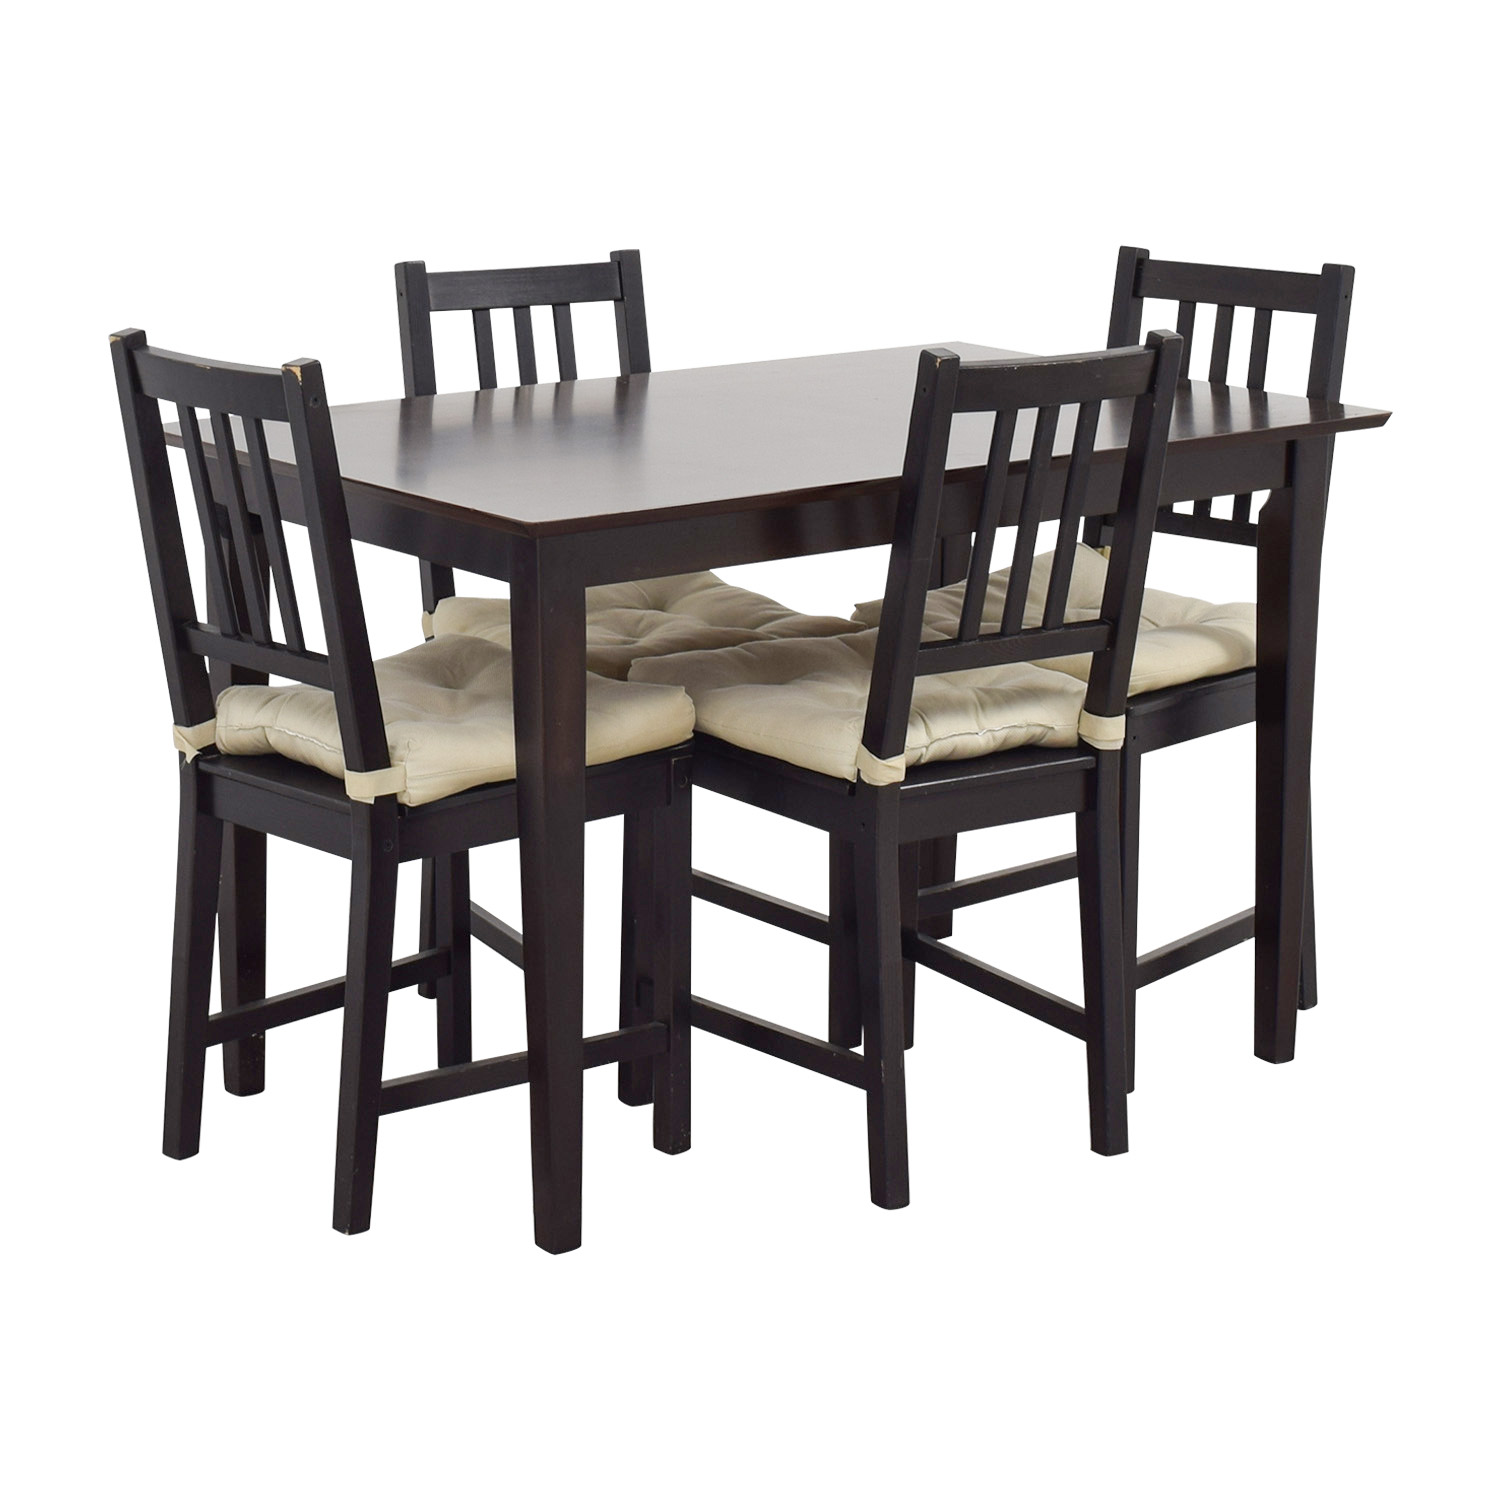 ikea wooden dining table 4 chairs overstuffed with ottomans 63 off brown wood set tables